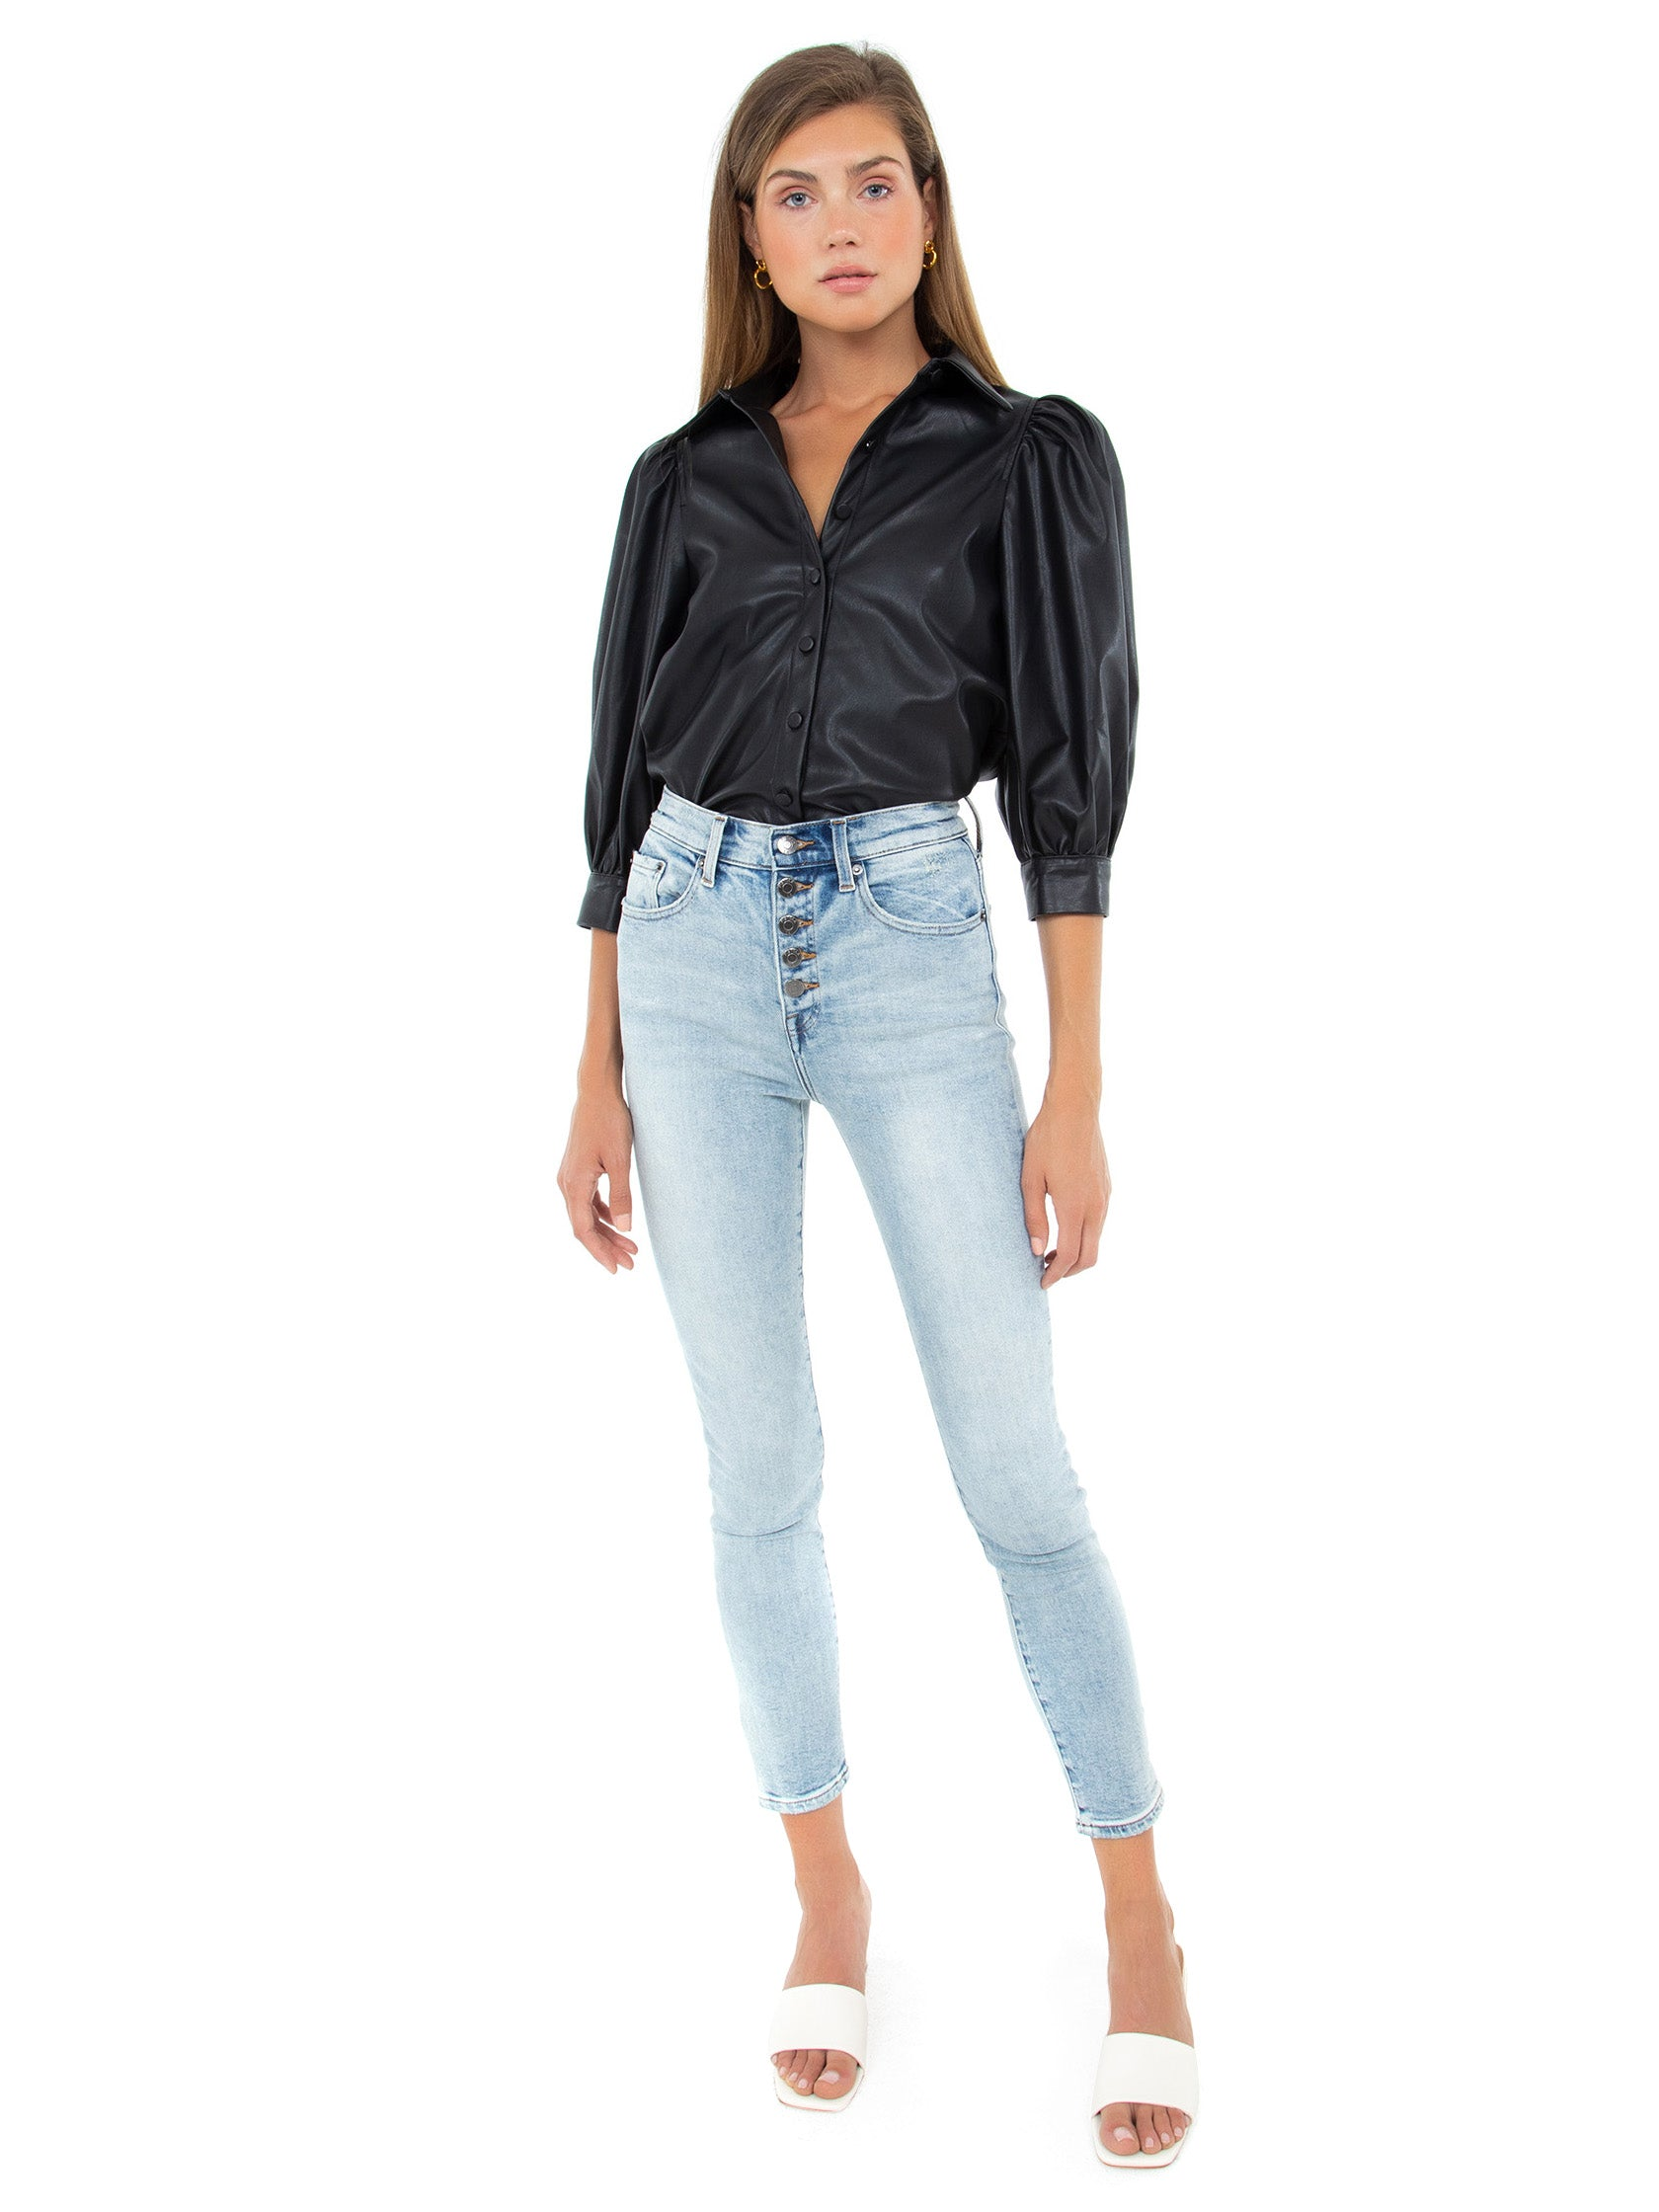 Girl outfit in a top rental from PISTOLA called Adina Puff Sleeve Shirt